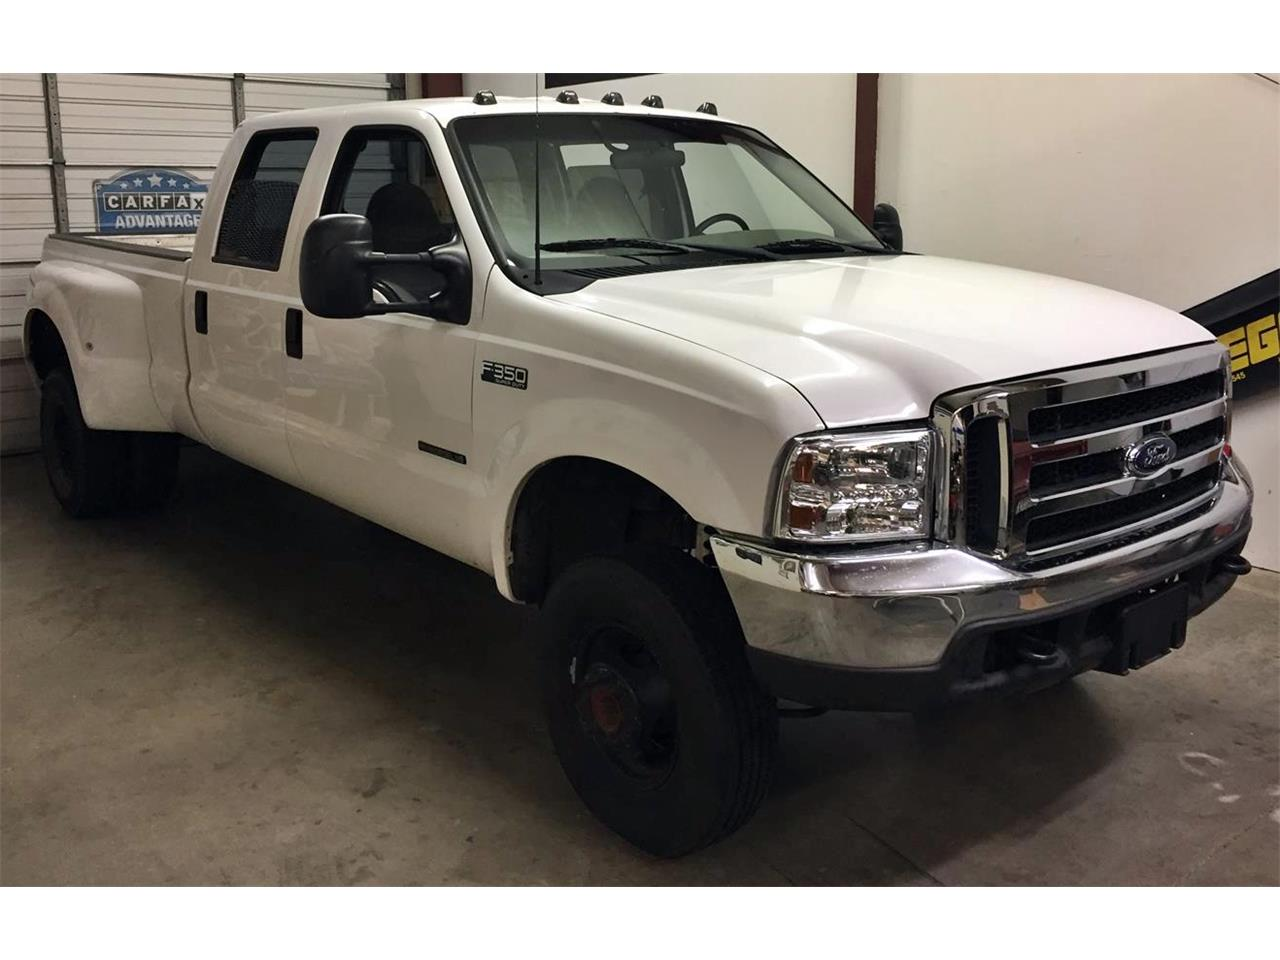 Large Picture of 2000 Ford F350 located in Georgia - $11,500.00 - JQDX